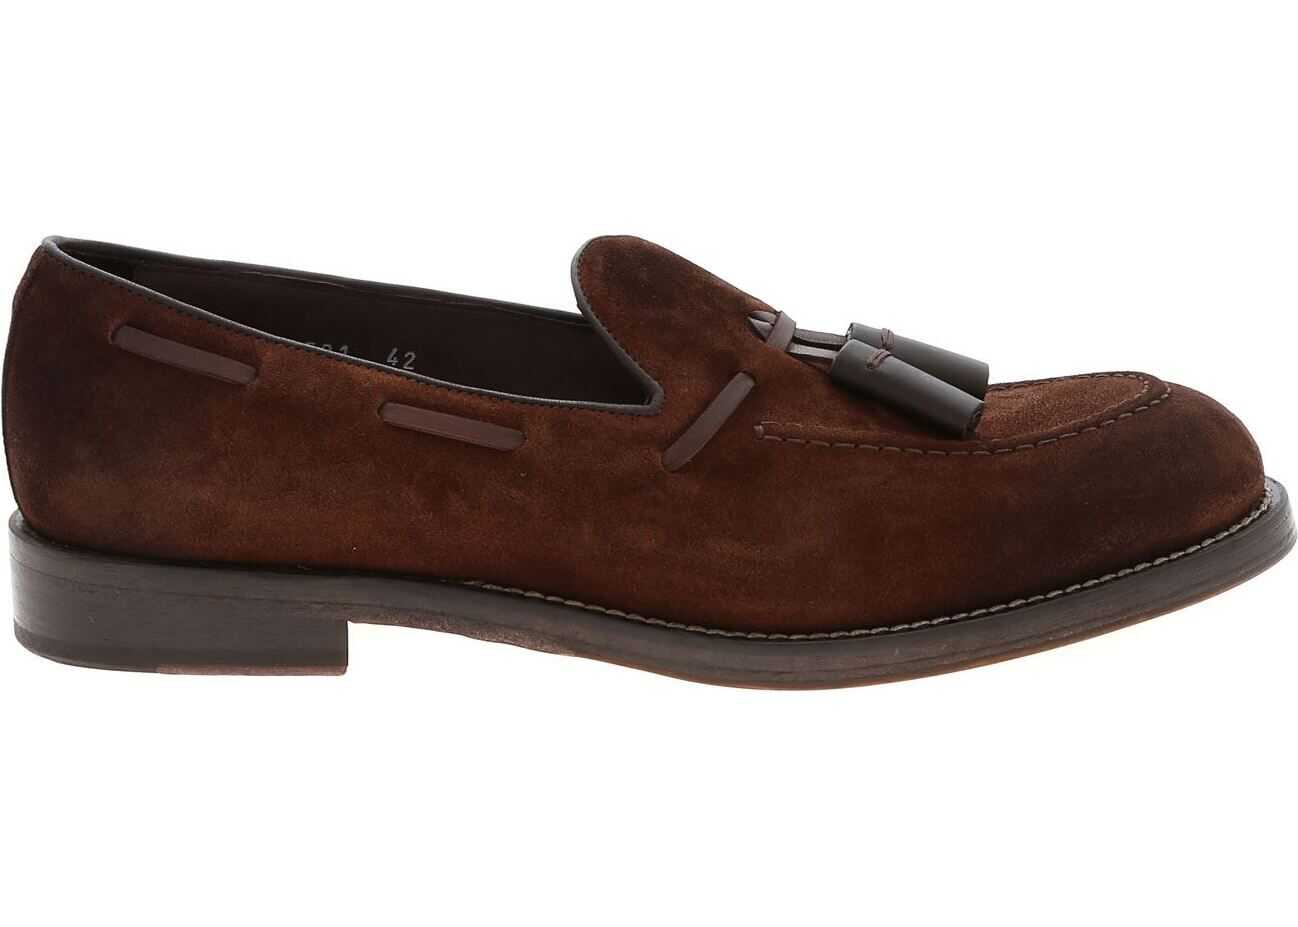 Doucal's Brown Suede Loafers With Tassels Brown